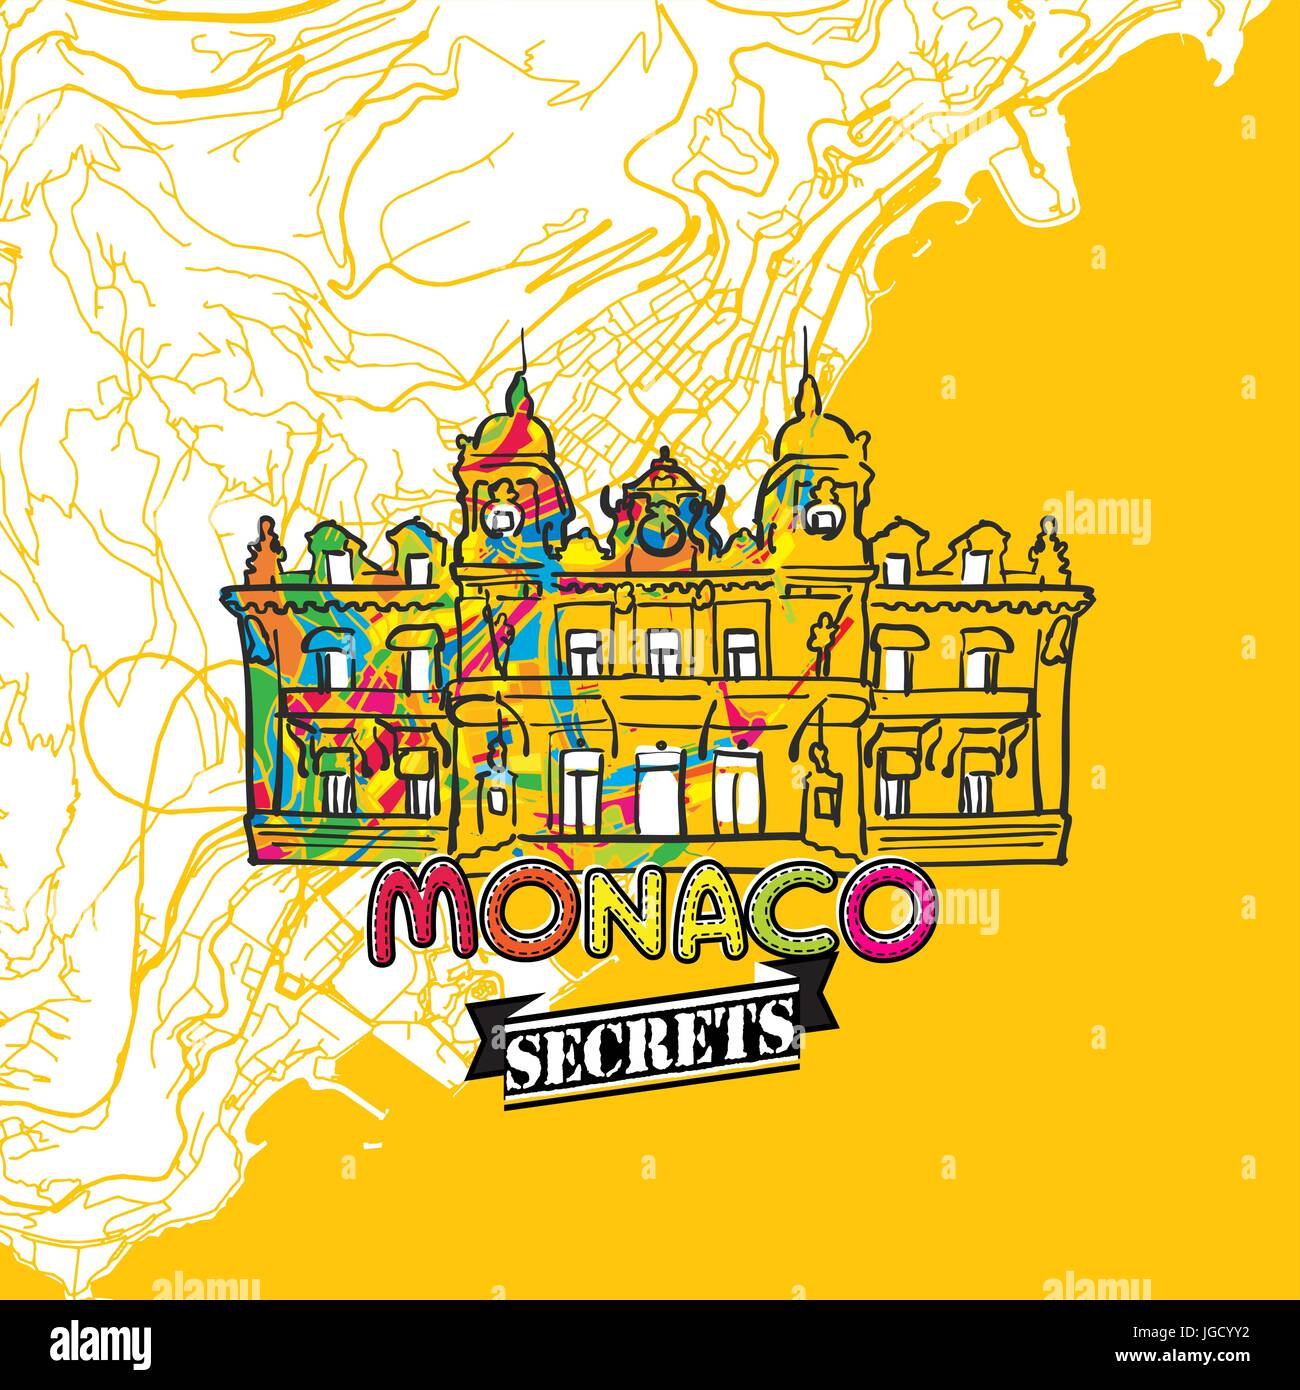 Monaco Travel Secrets Art Map for mapping experts and travel guides. Handmade city logo, typo badge and hand drawn - Stock Image